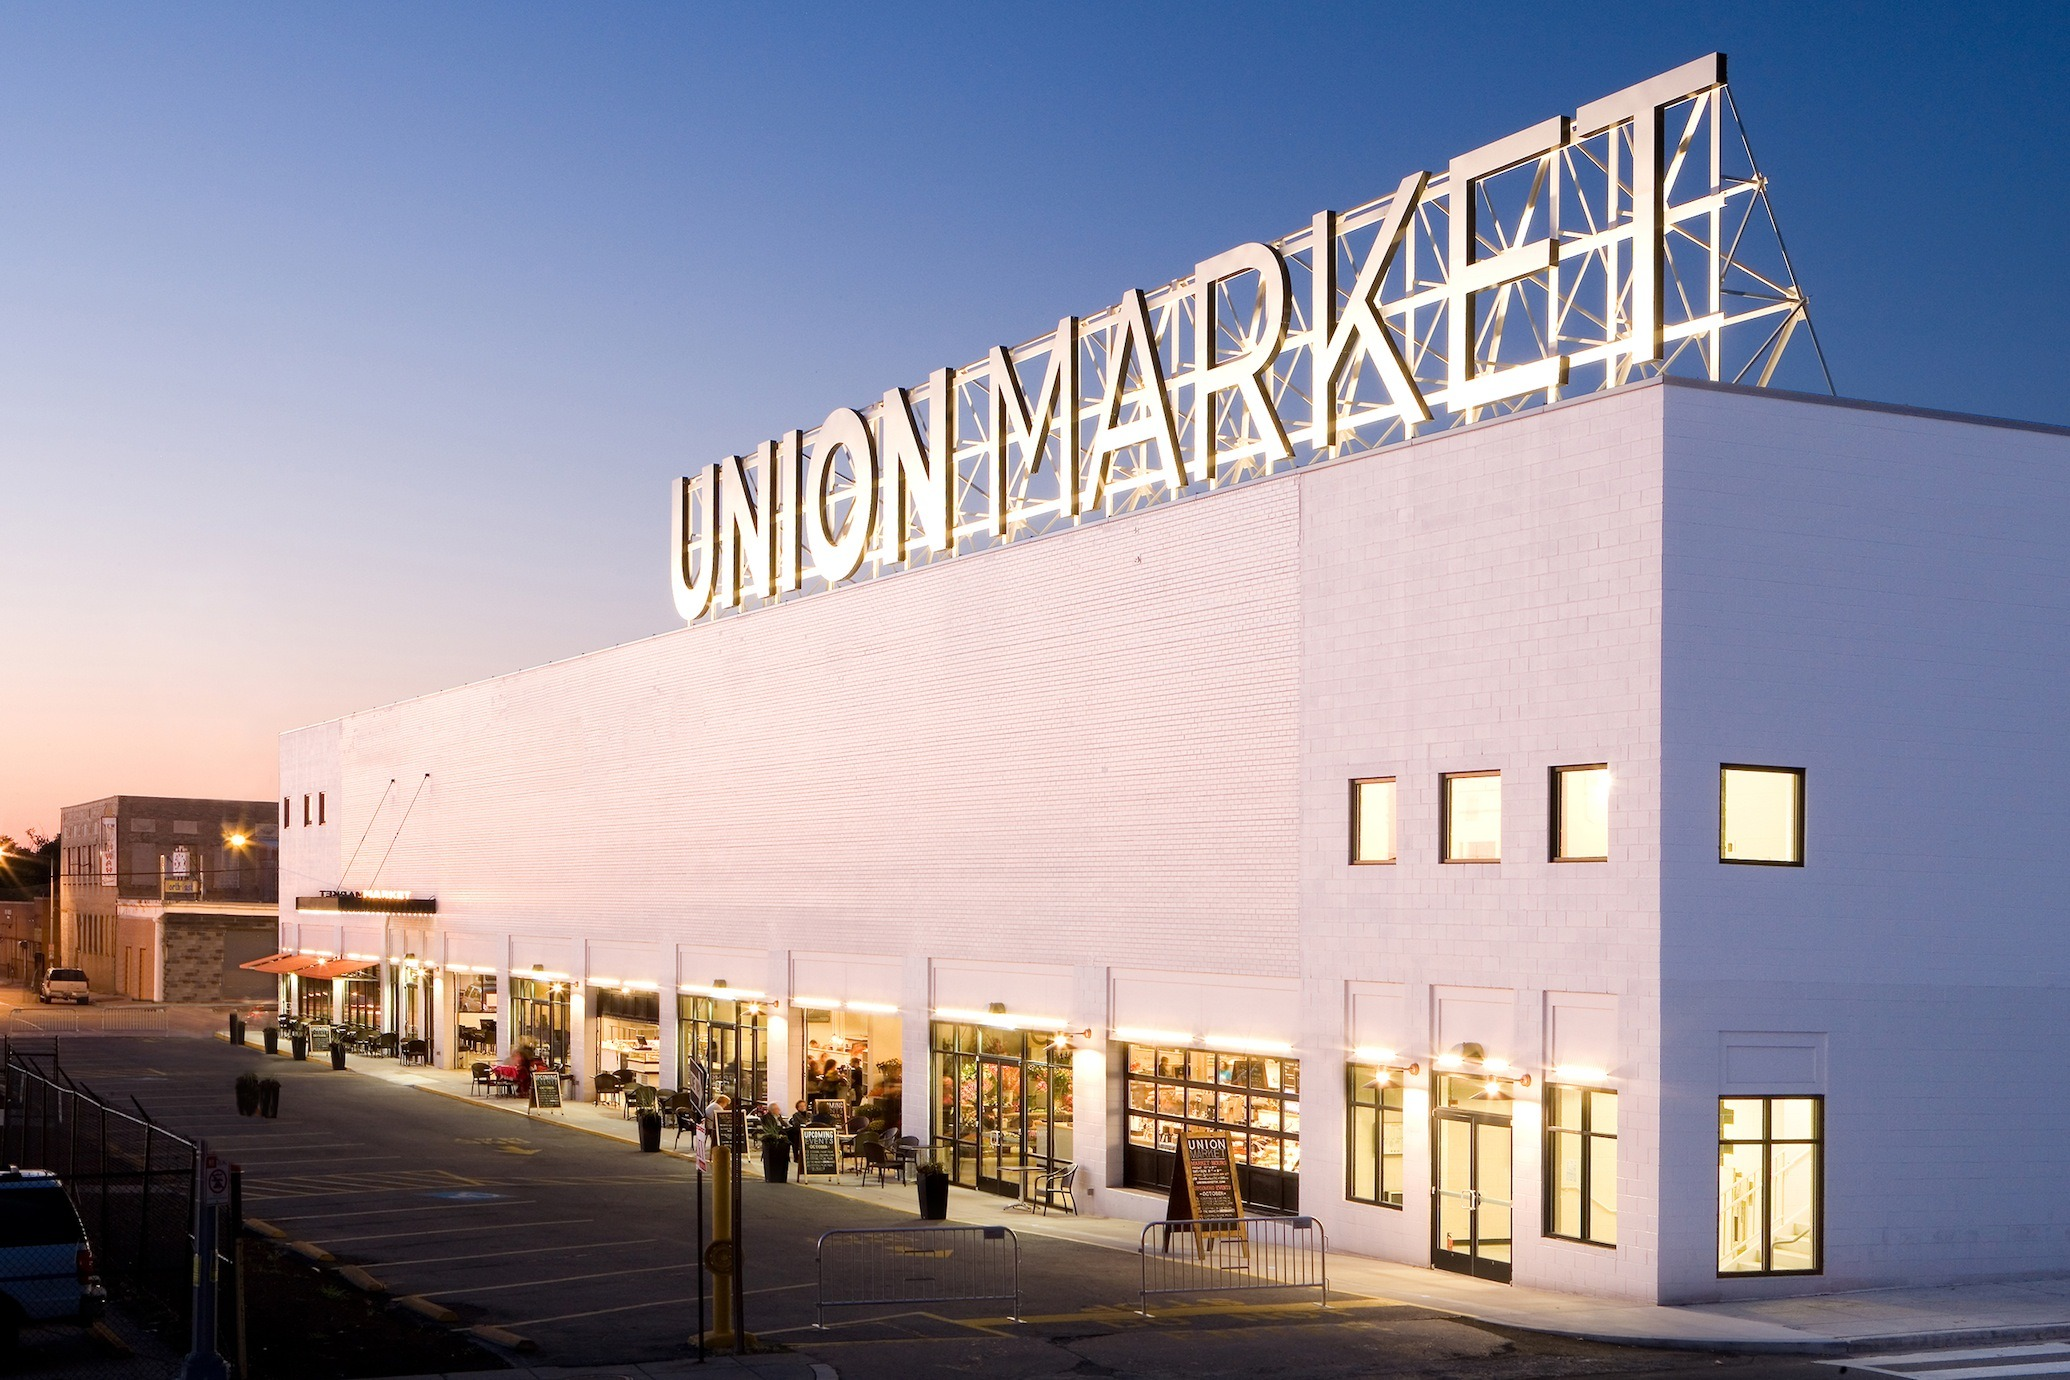 Mingle with the foodies at Union Market